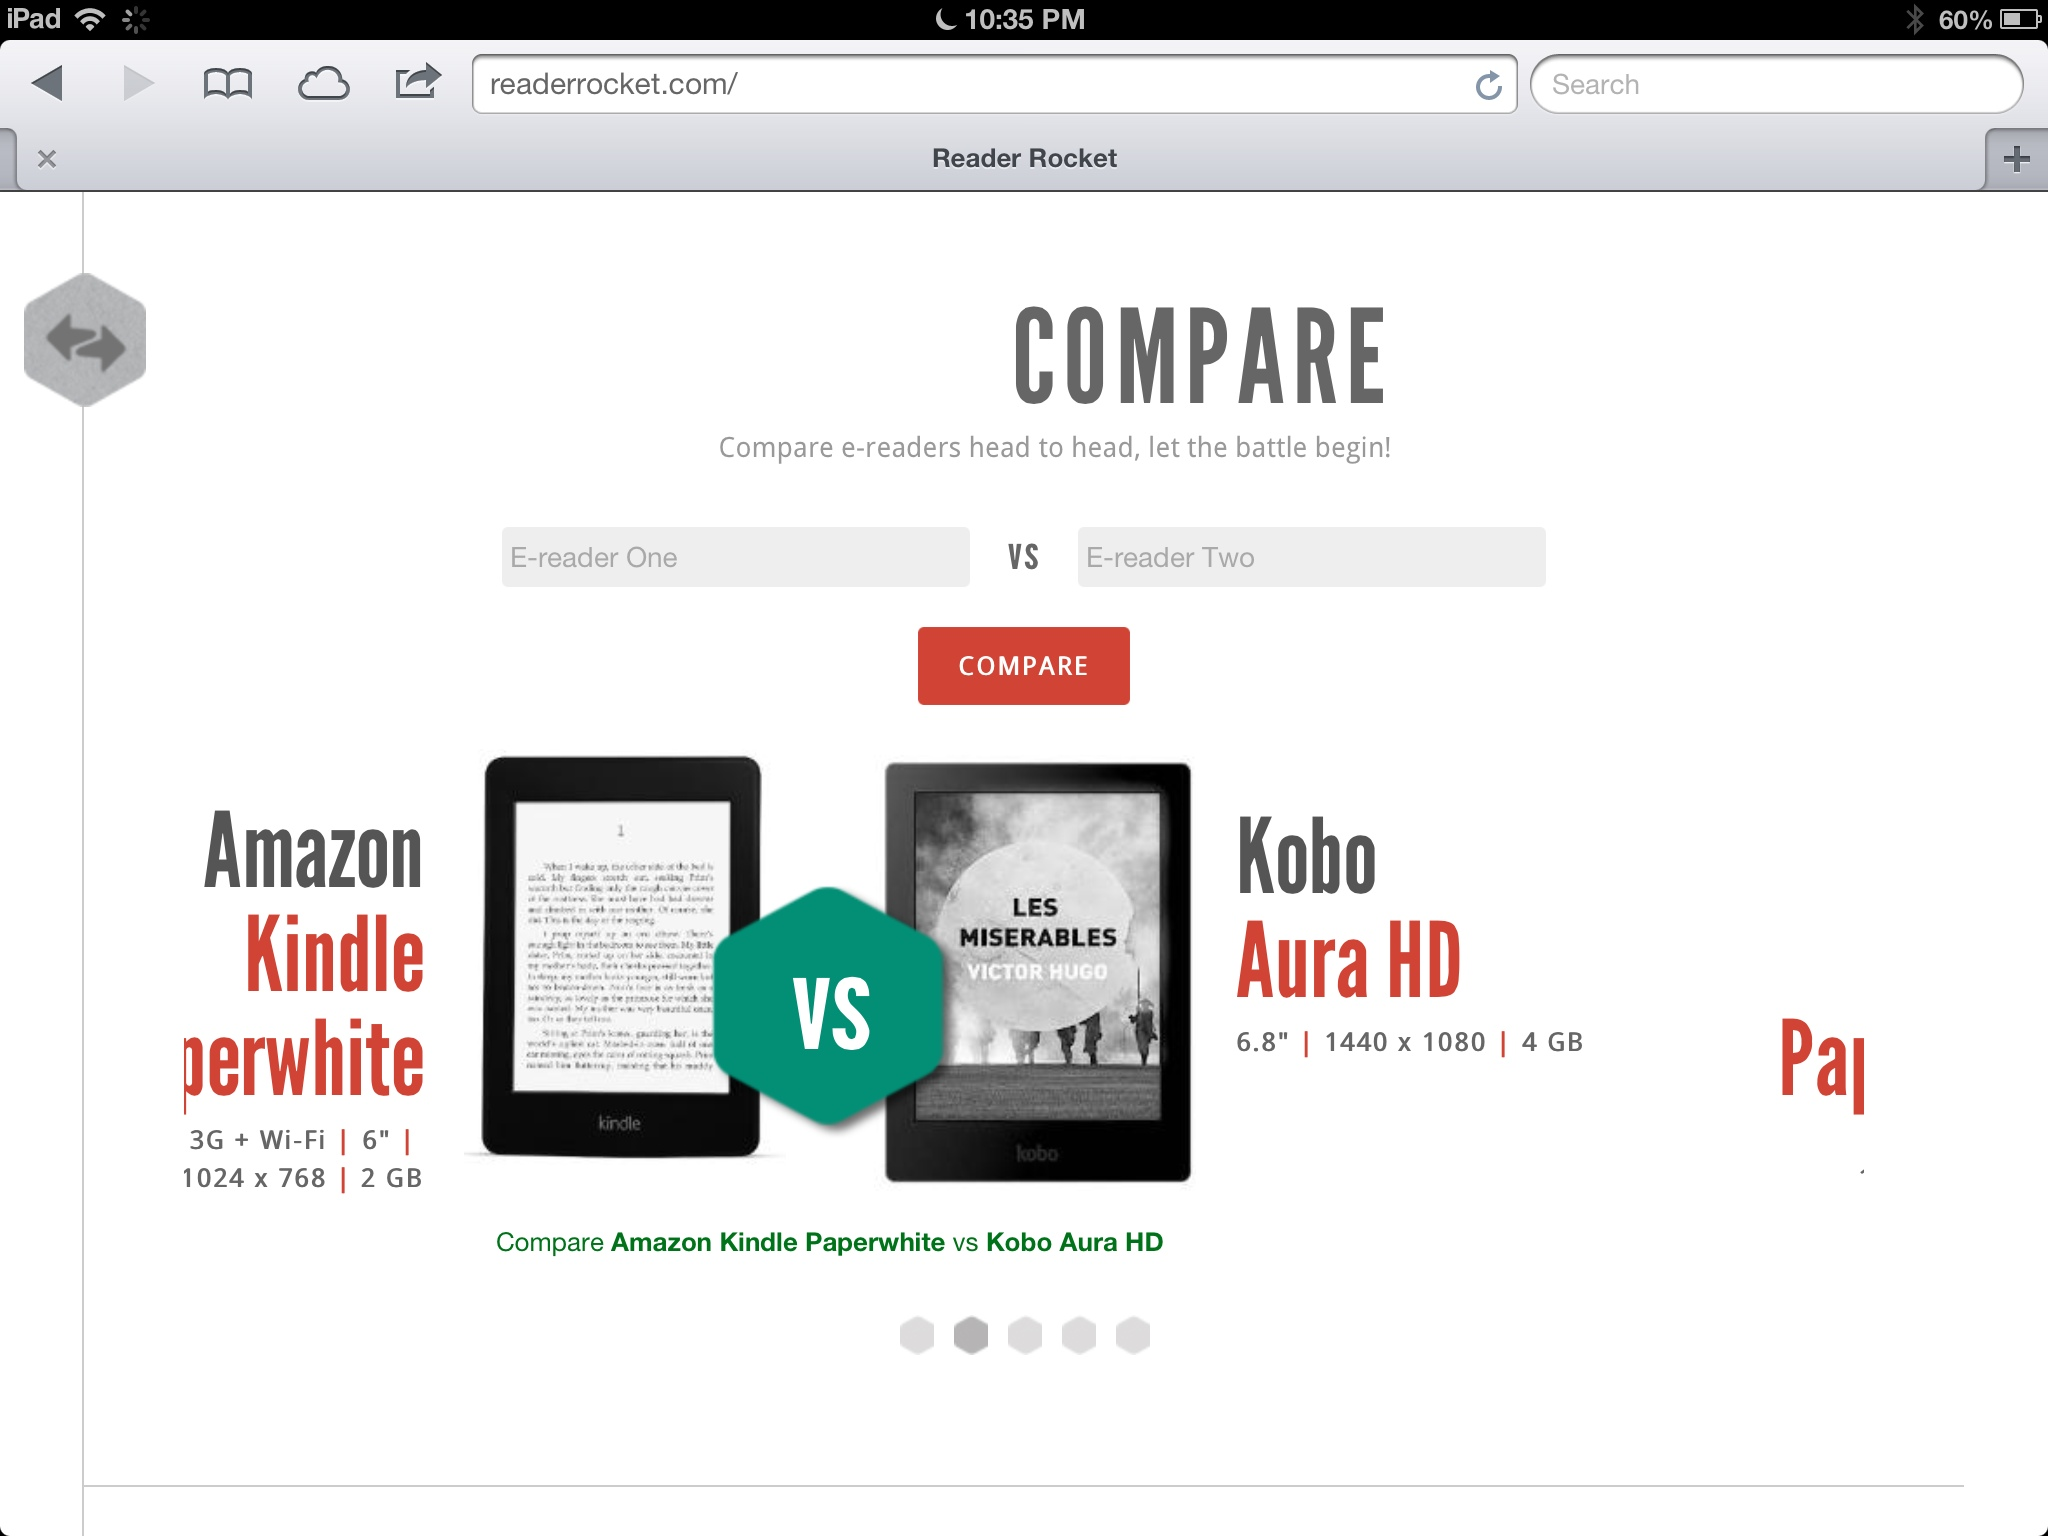 Reader Rocket Aims to Easily Compare eBook Readers